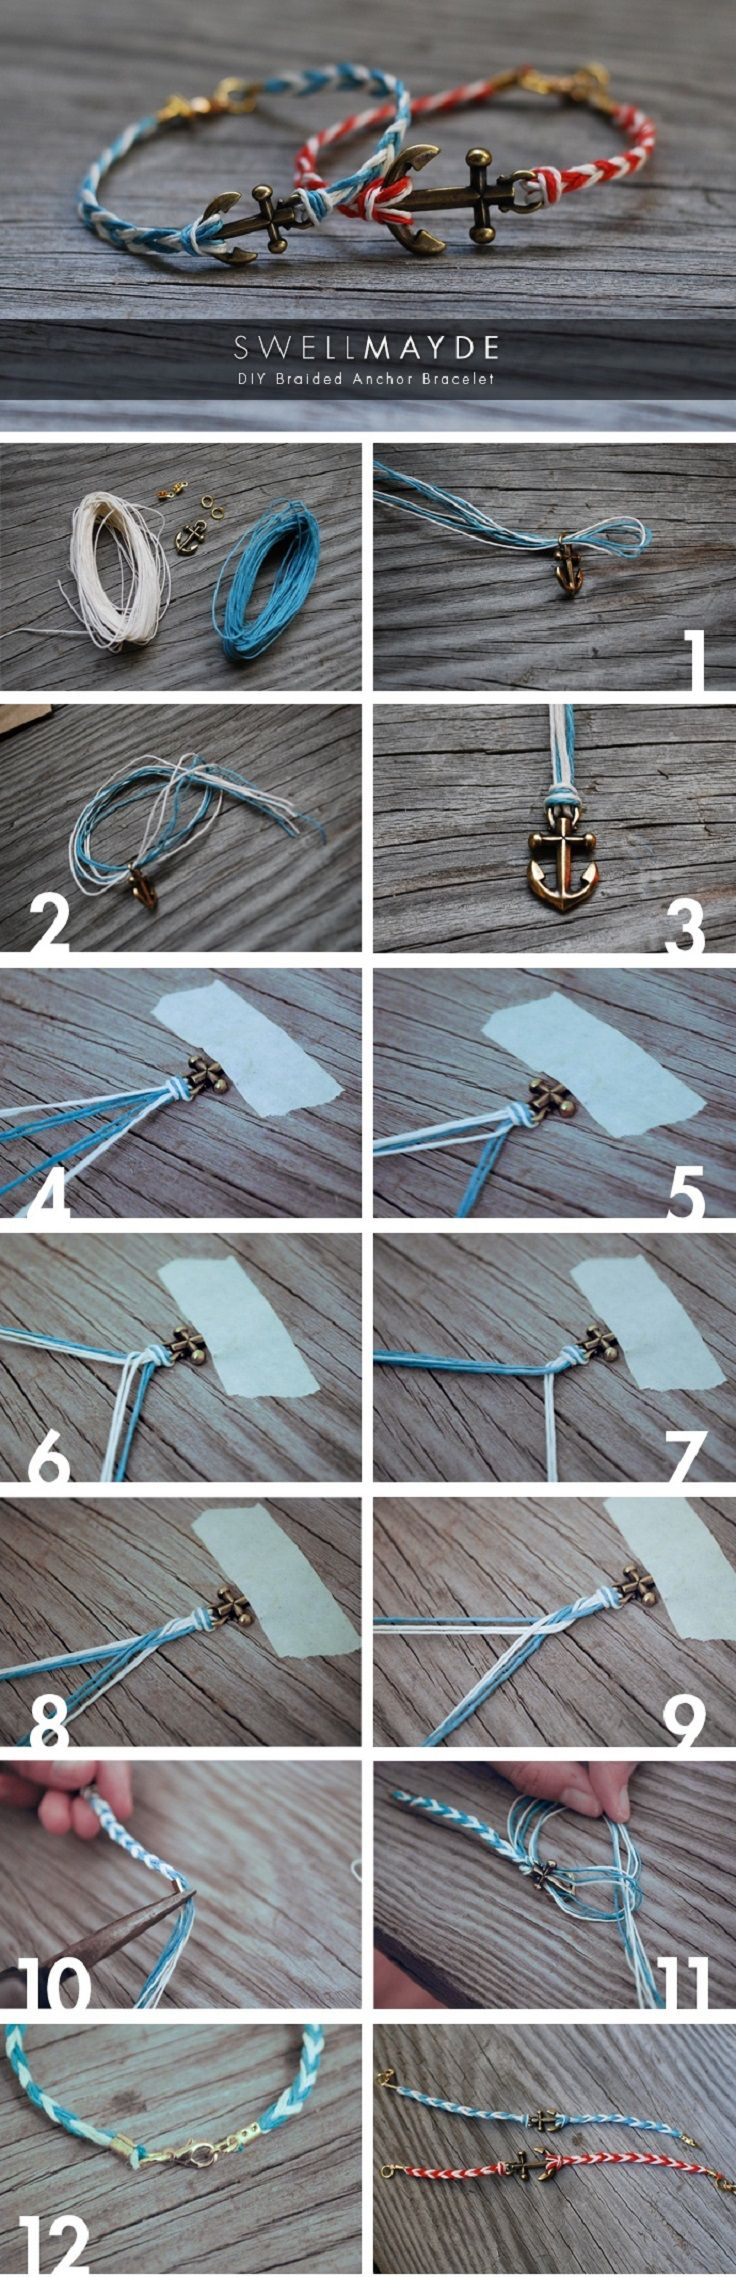 DIY Fishtail Anchor Bracelet. See here for a bundle of other engaging fun craft projects. http://www.topinspired.com/top-10-fun-craft-ideas/